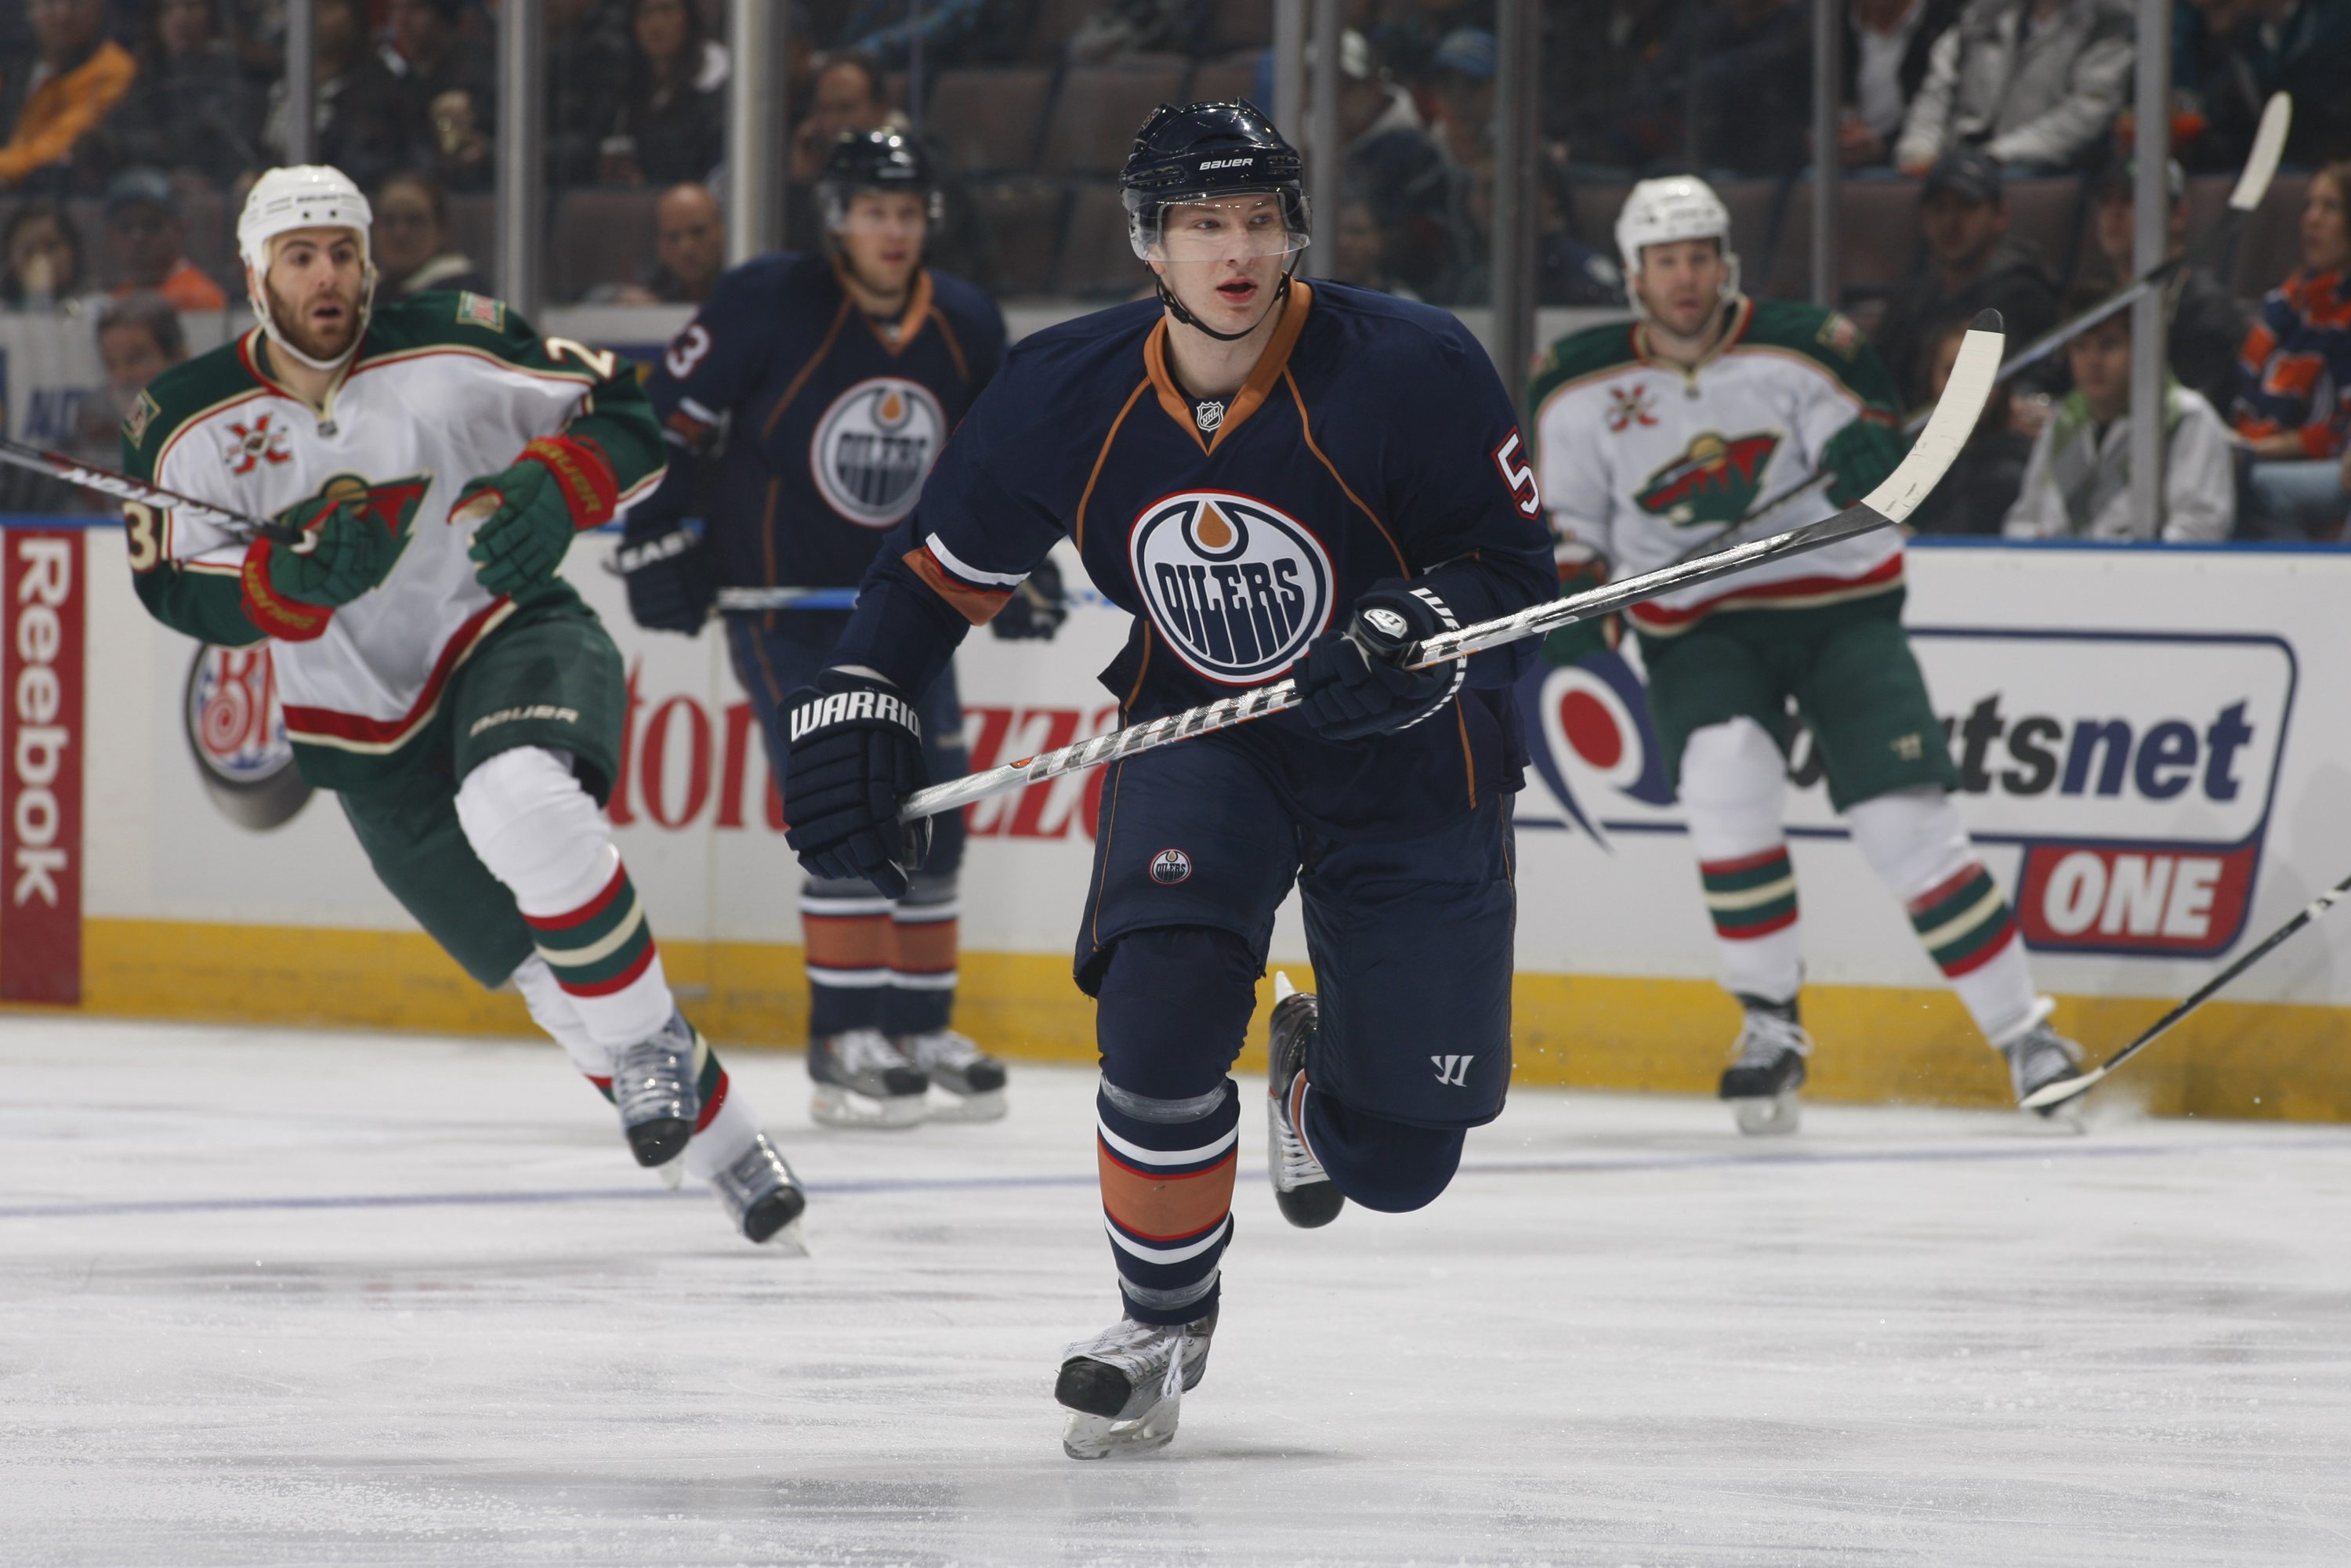 EDMONTON, CANADA - JANUARY 18: Ladislav Smid #5 of the Edmonton Oilers skates against the Minnesota Wild on January 18, 2011 at Rexall Place in Edmonton, Alberta, Canada. (Photo by Dale MacMillan/Getty Images)